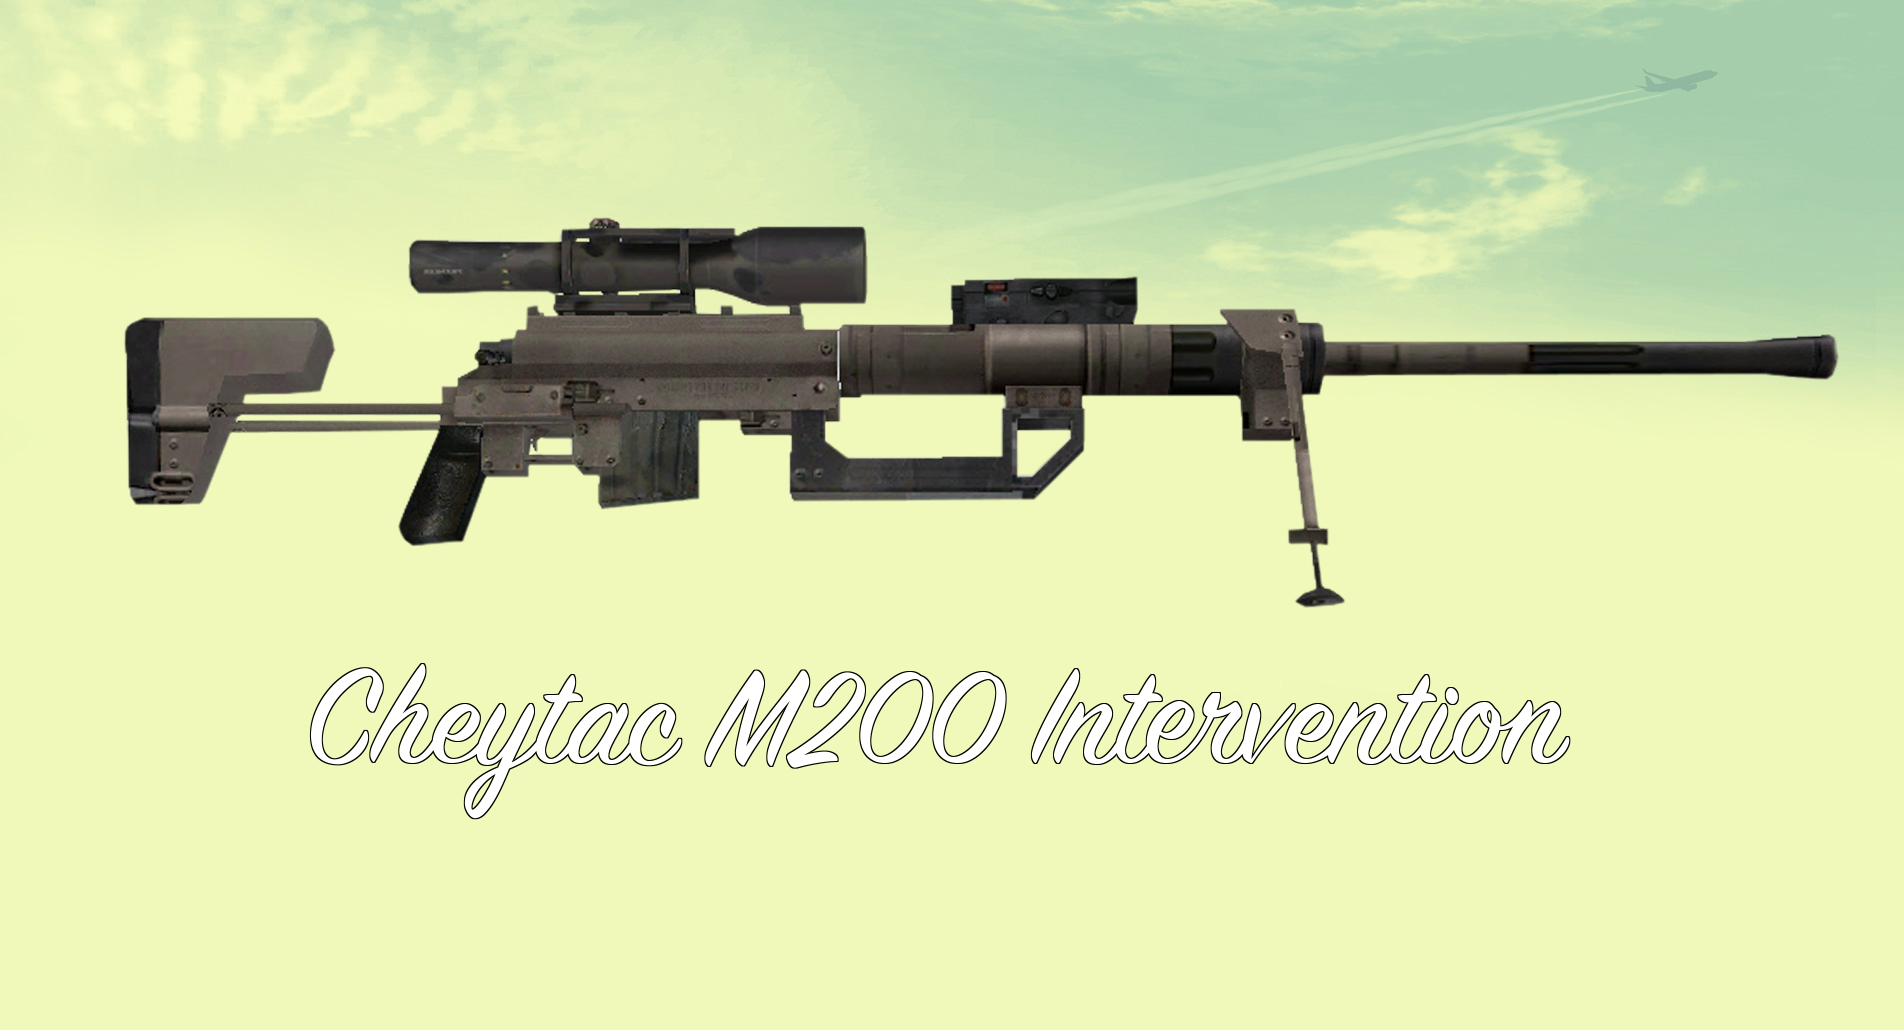 Cheytac M200 Intervention - GTA5-Mods com